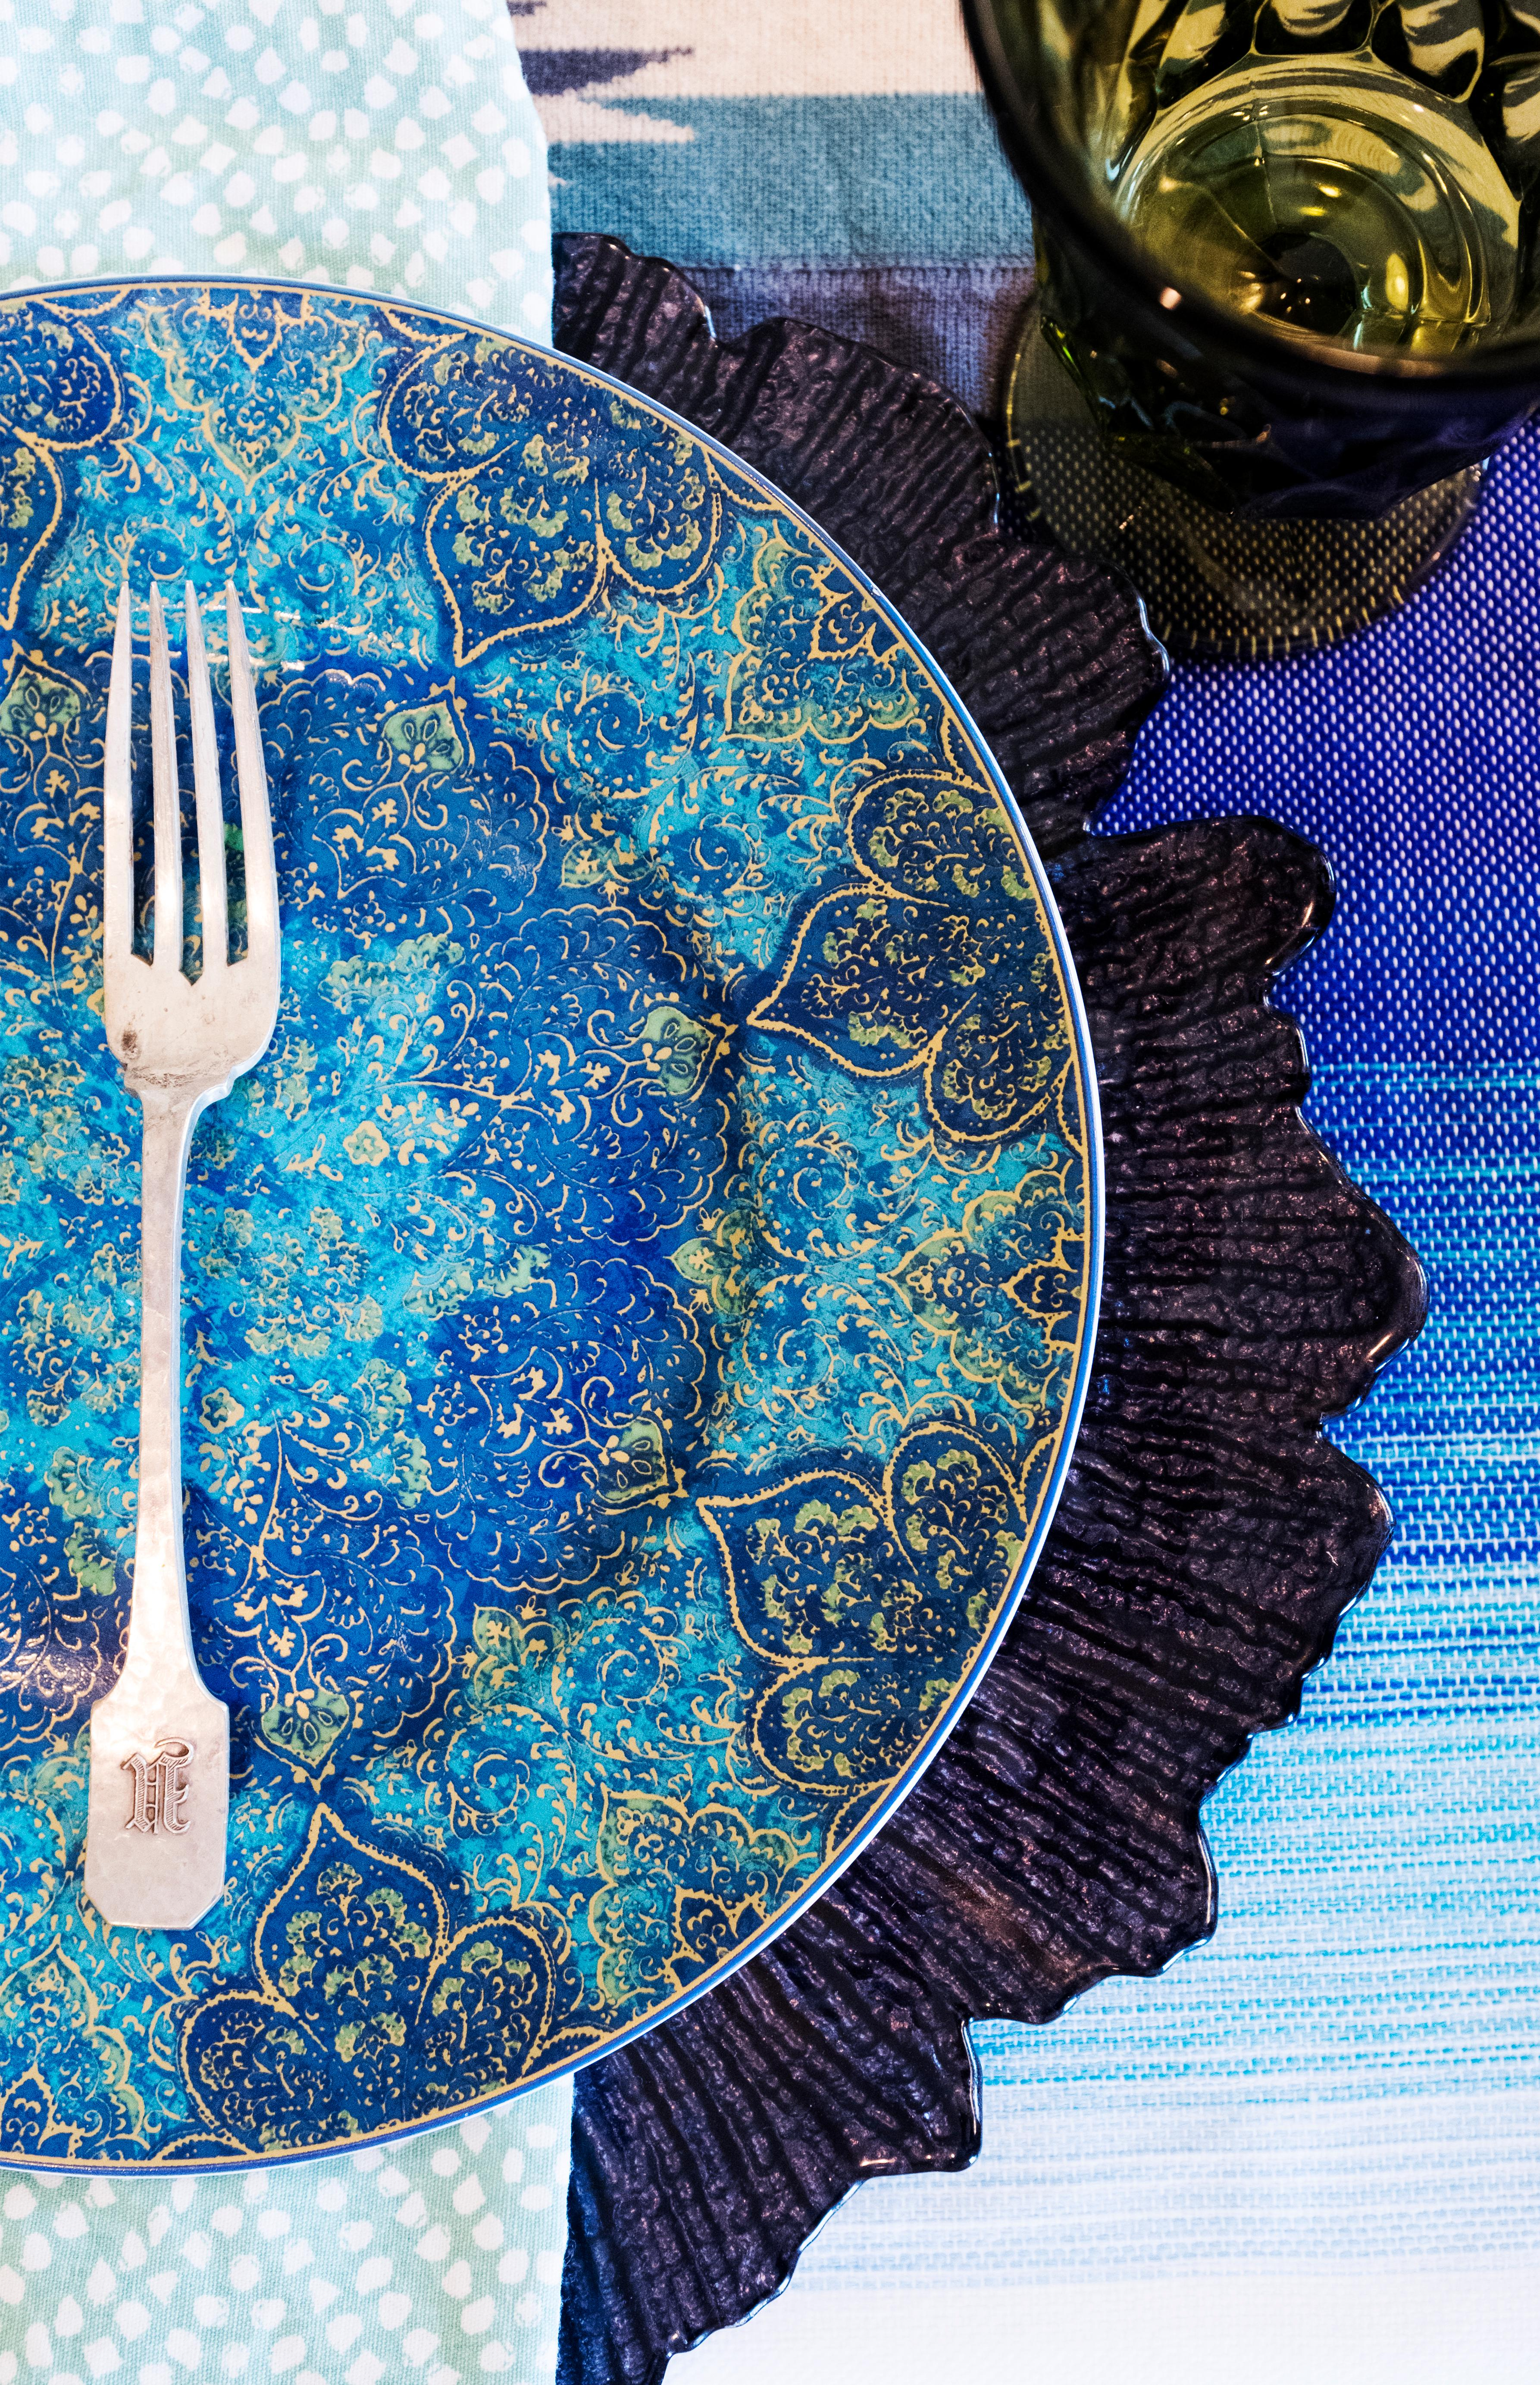 Layer different patterned tablecloths on top of each other and mix and match your napkins for a fun and festive feel. The key to pattern mixing is to stick to a basic color palate such as green, blue, and white. Then mix large patterns with small or medium patterns to avoid a busy look.(Image: Ashley Hafstead)